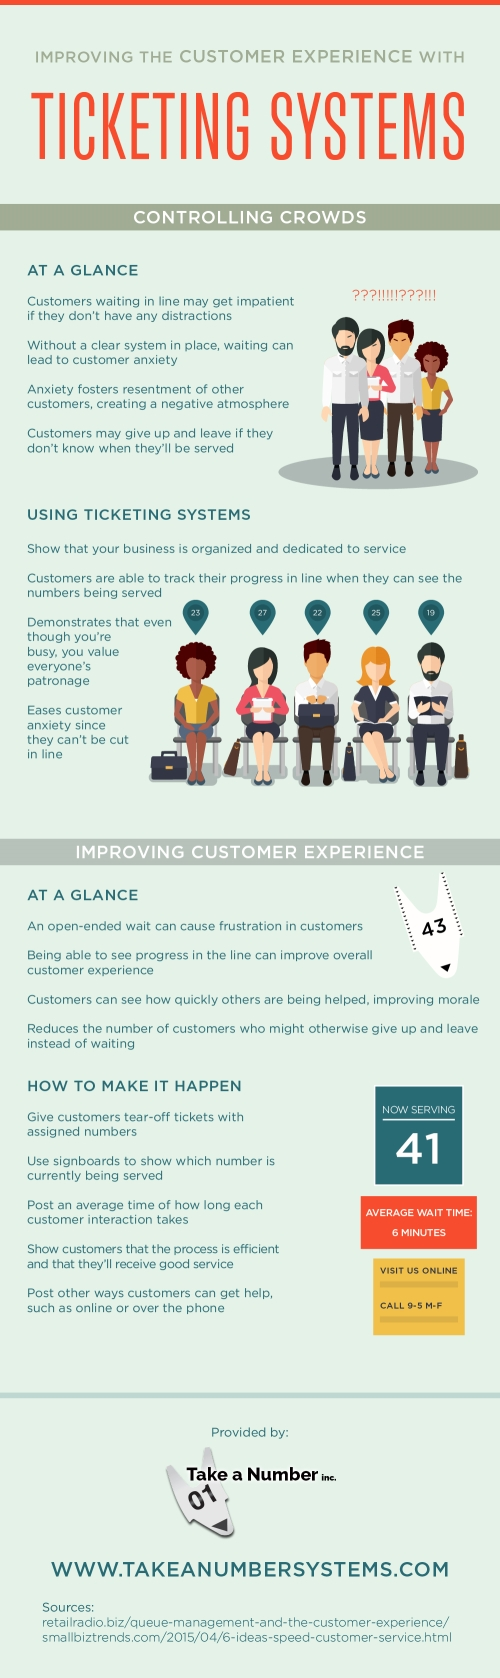 improving-the-customer-experience-with-ticketing-systems_58177b5358534